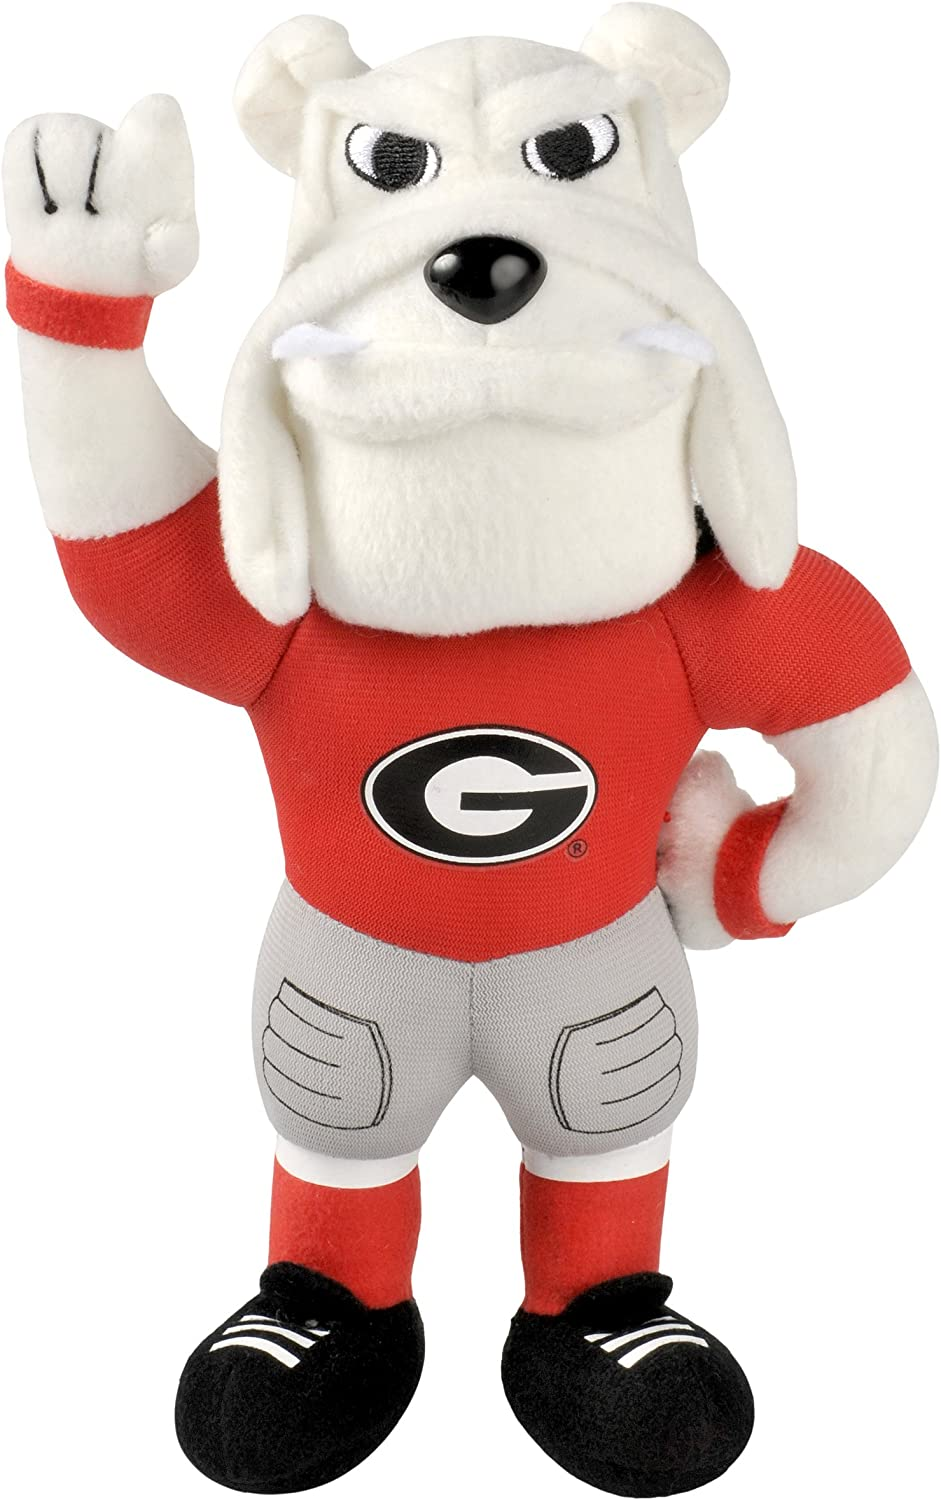 Georgia Bulldogs Official NCAA Plush Team Mascot by Forever Collectibles 108501